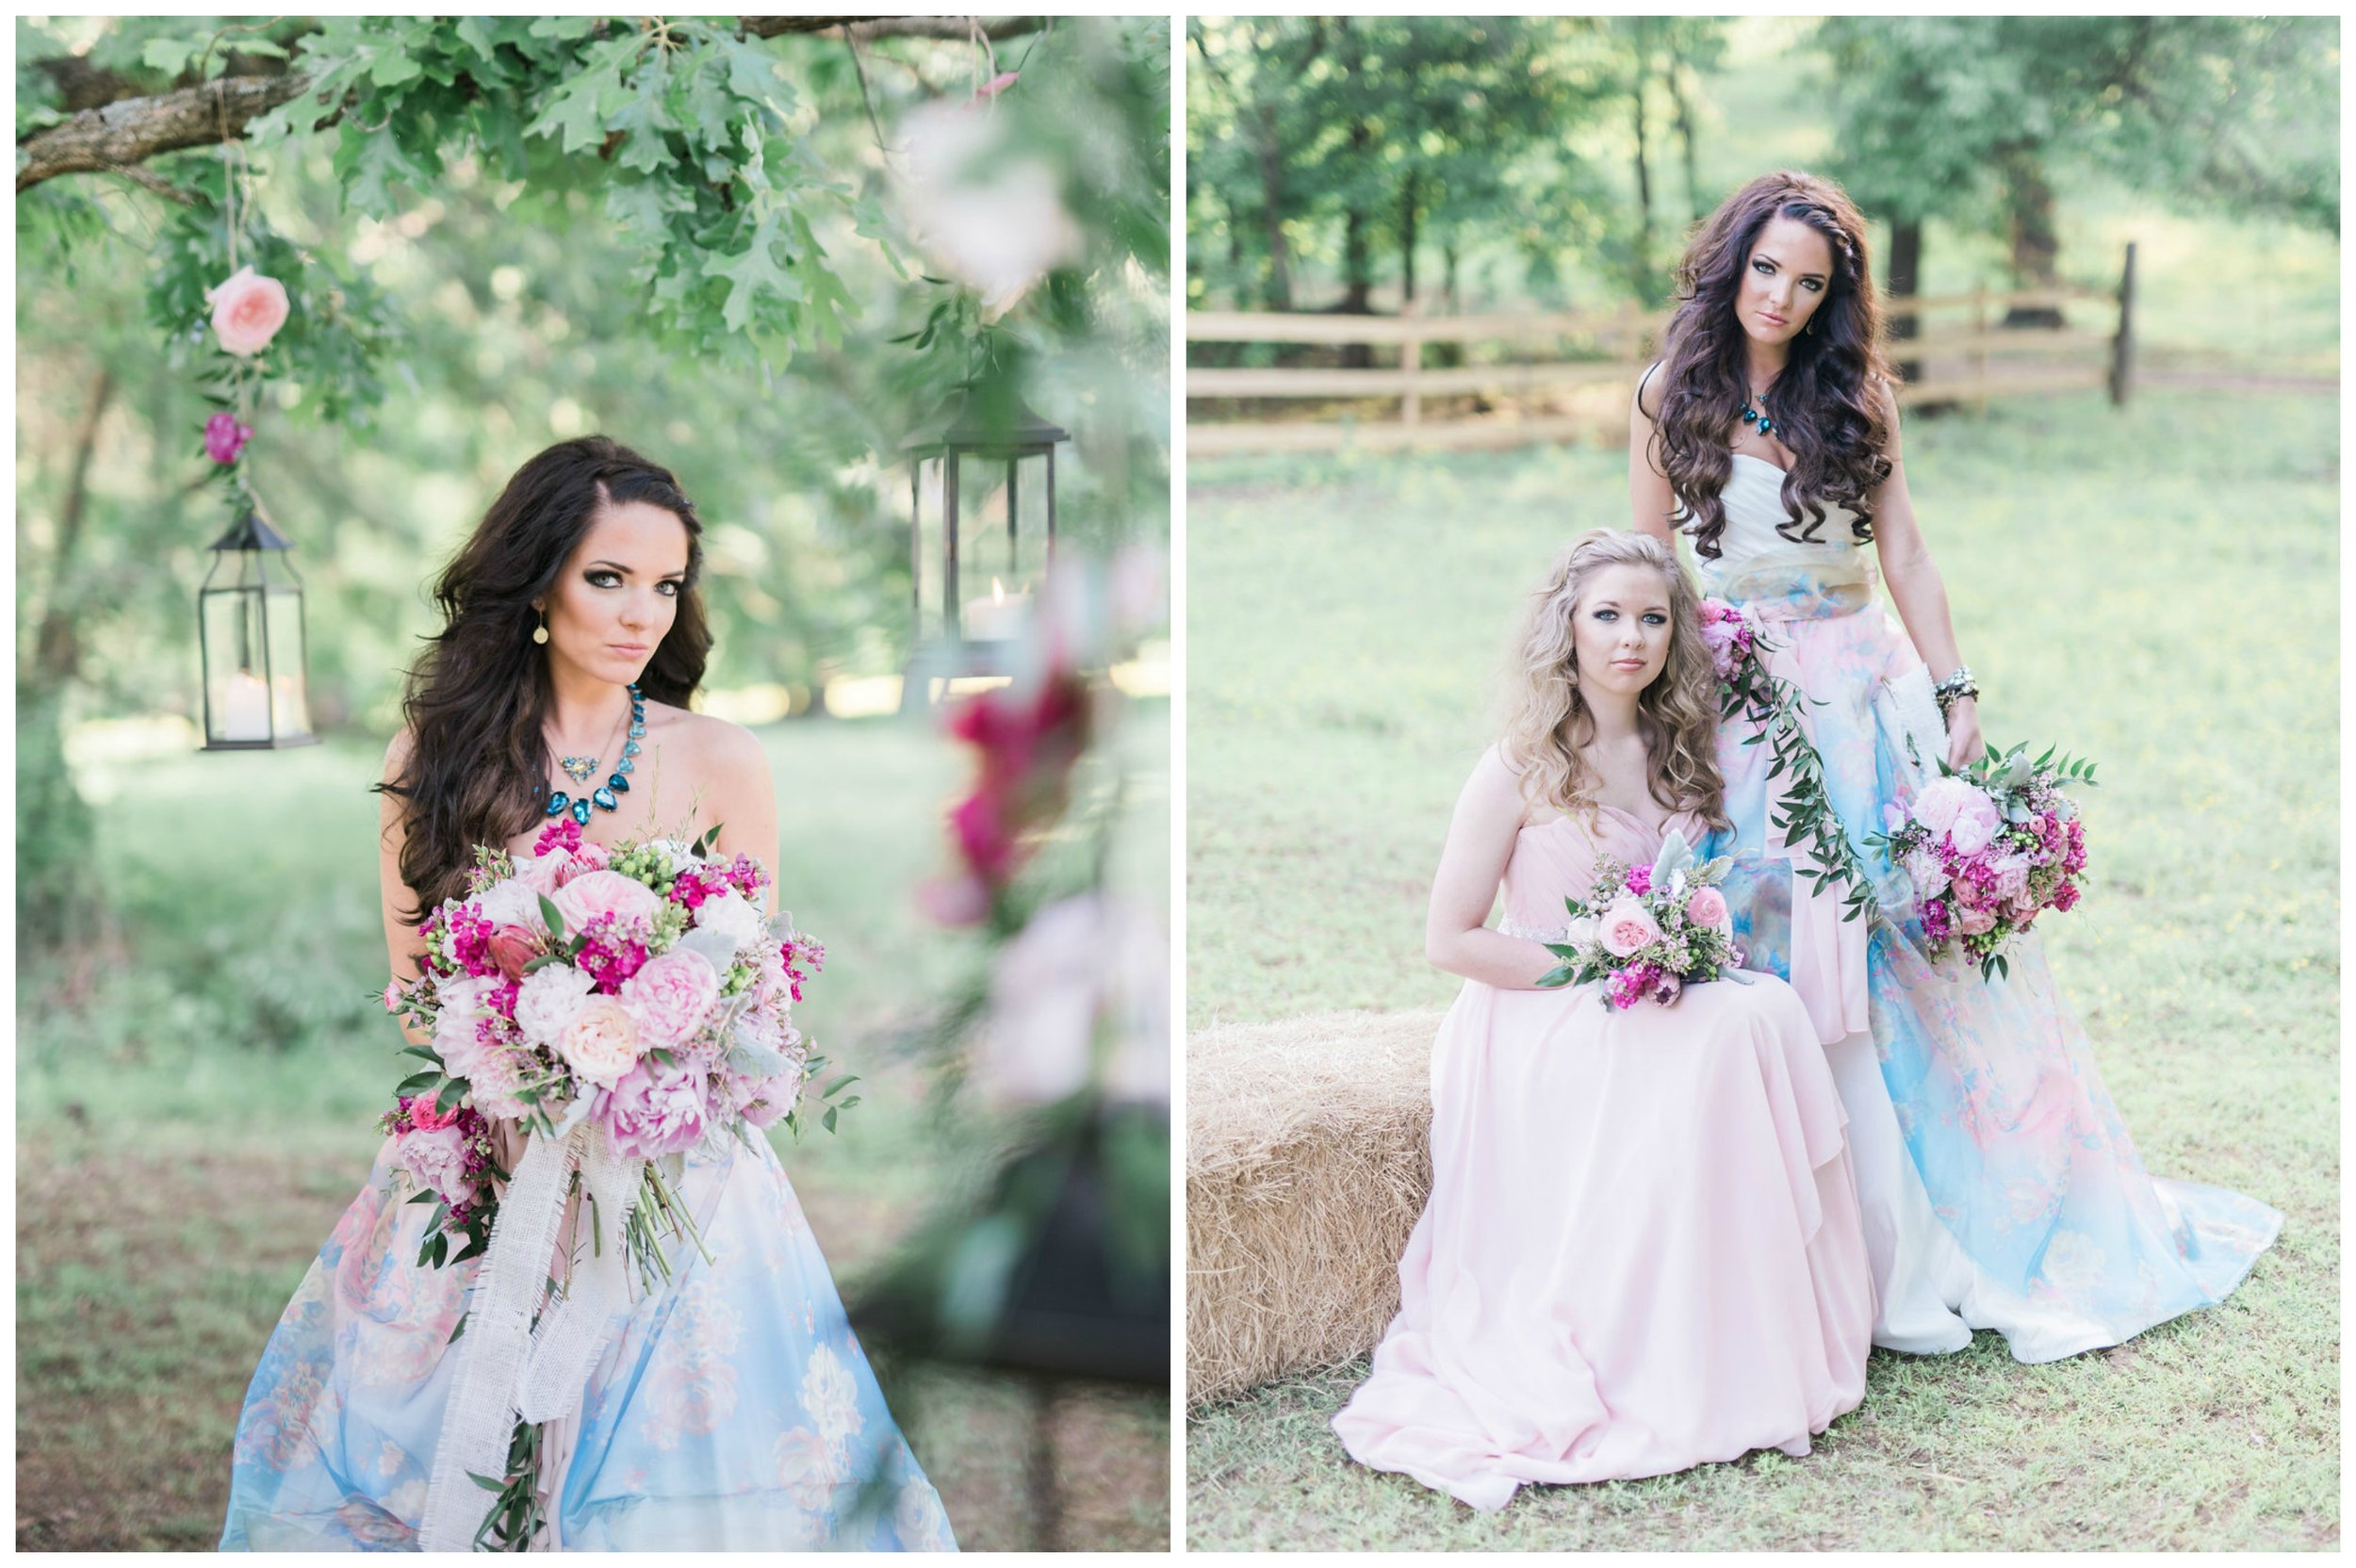 Steph Smith Weddings , from our  Magical Meadow styled shoot